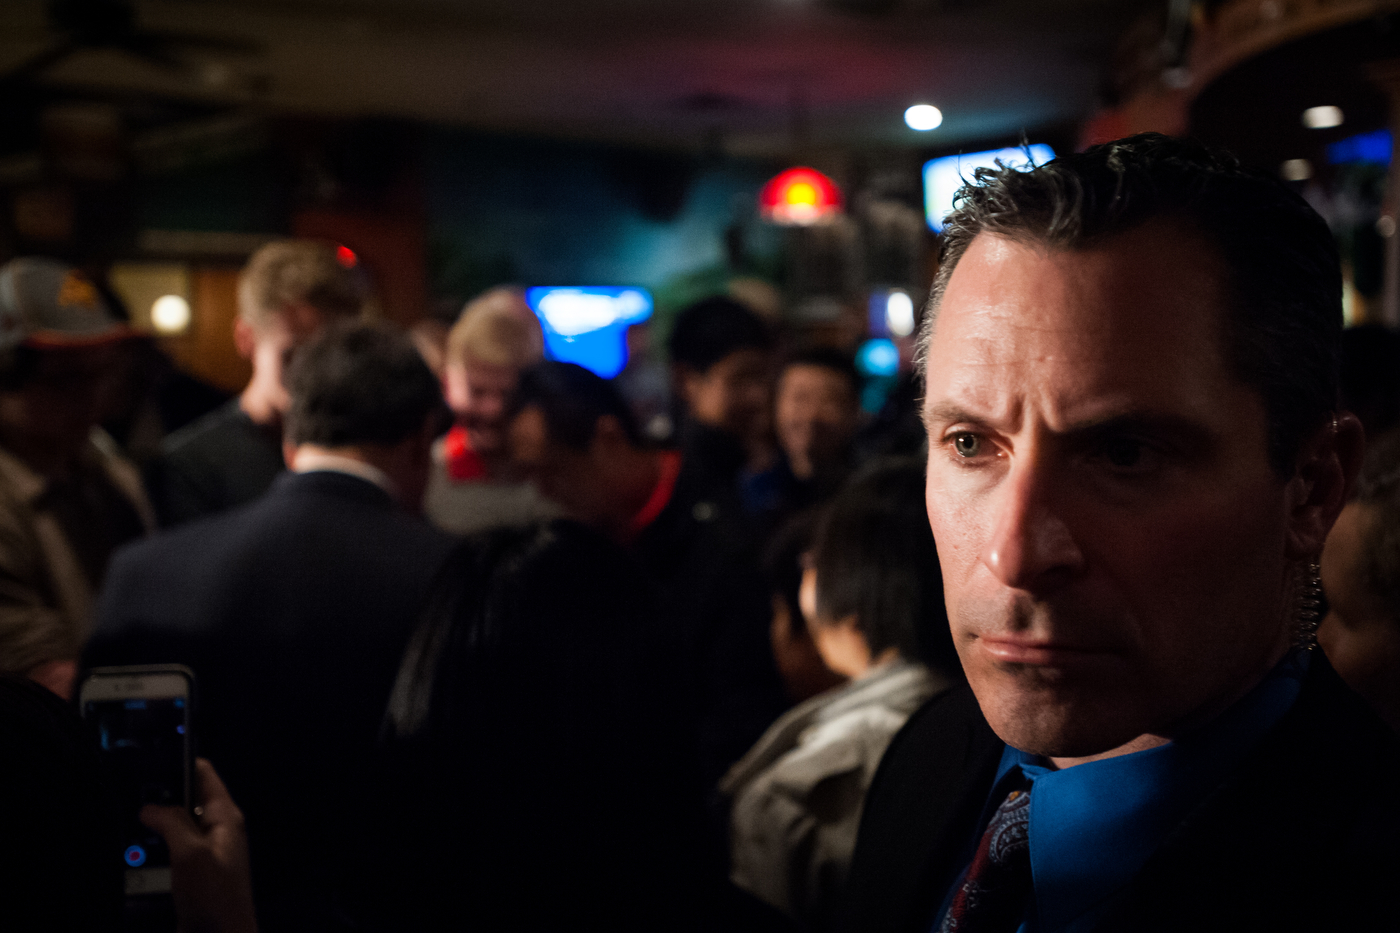 A member of the New Jersey State Police Executive Protection Unit watches over the crowd as Republican presidential candidate New Jersey Governor Chris Christie greets supporters after a town hall event at Mickey's Irish Pub in Waukee, Iowa on December 30, 2015.